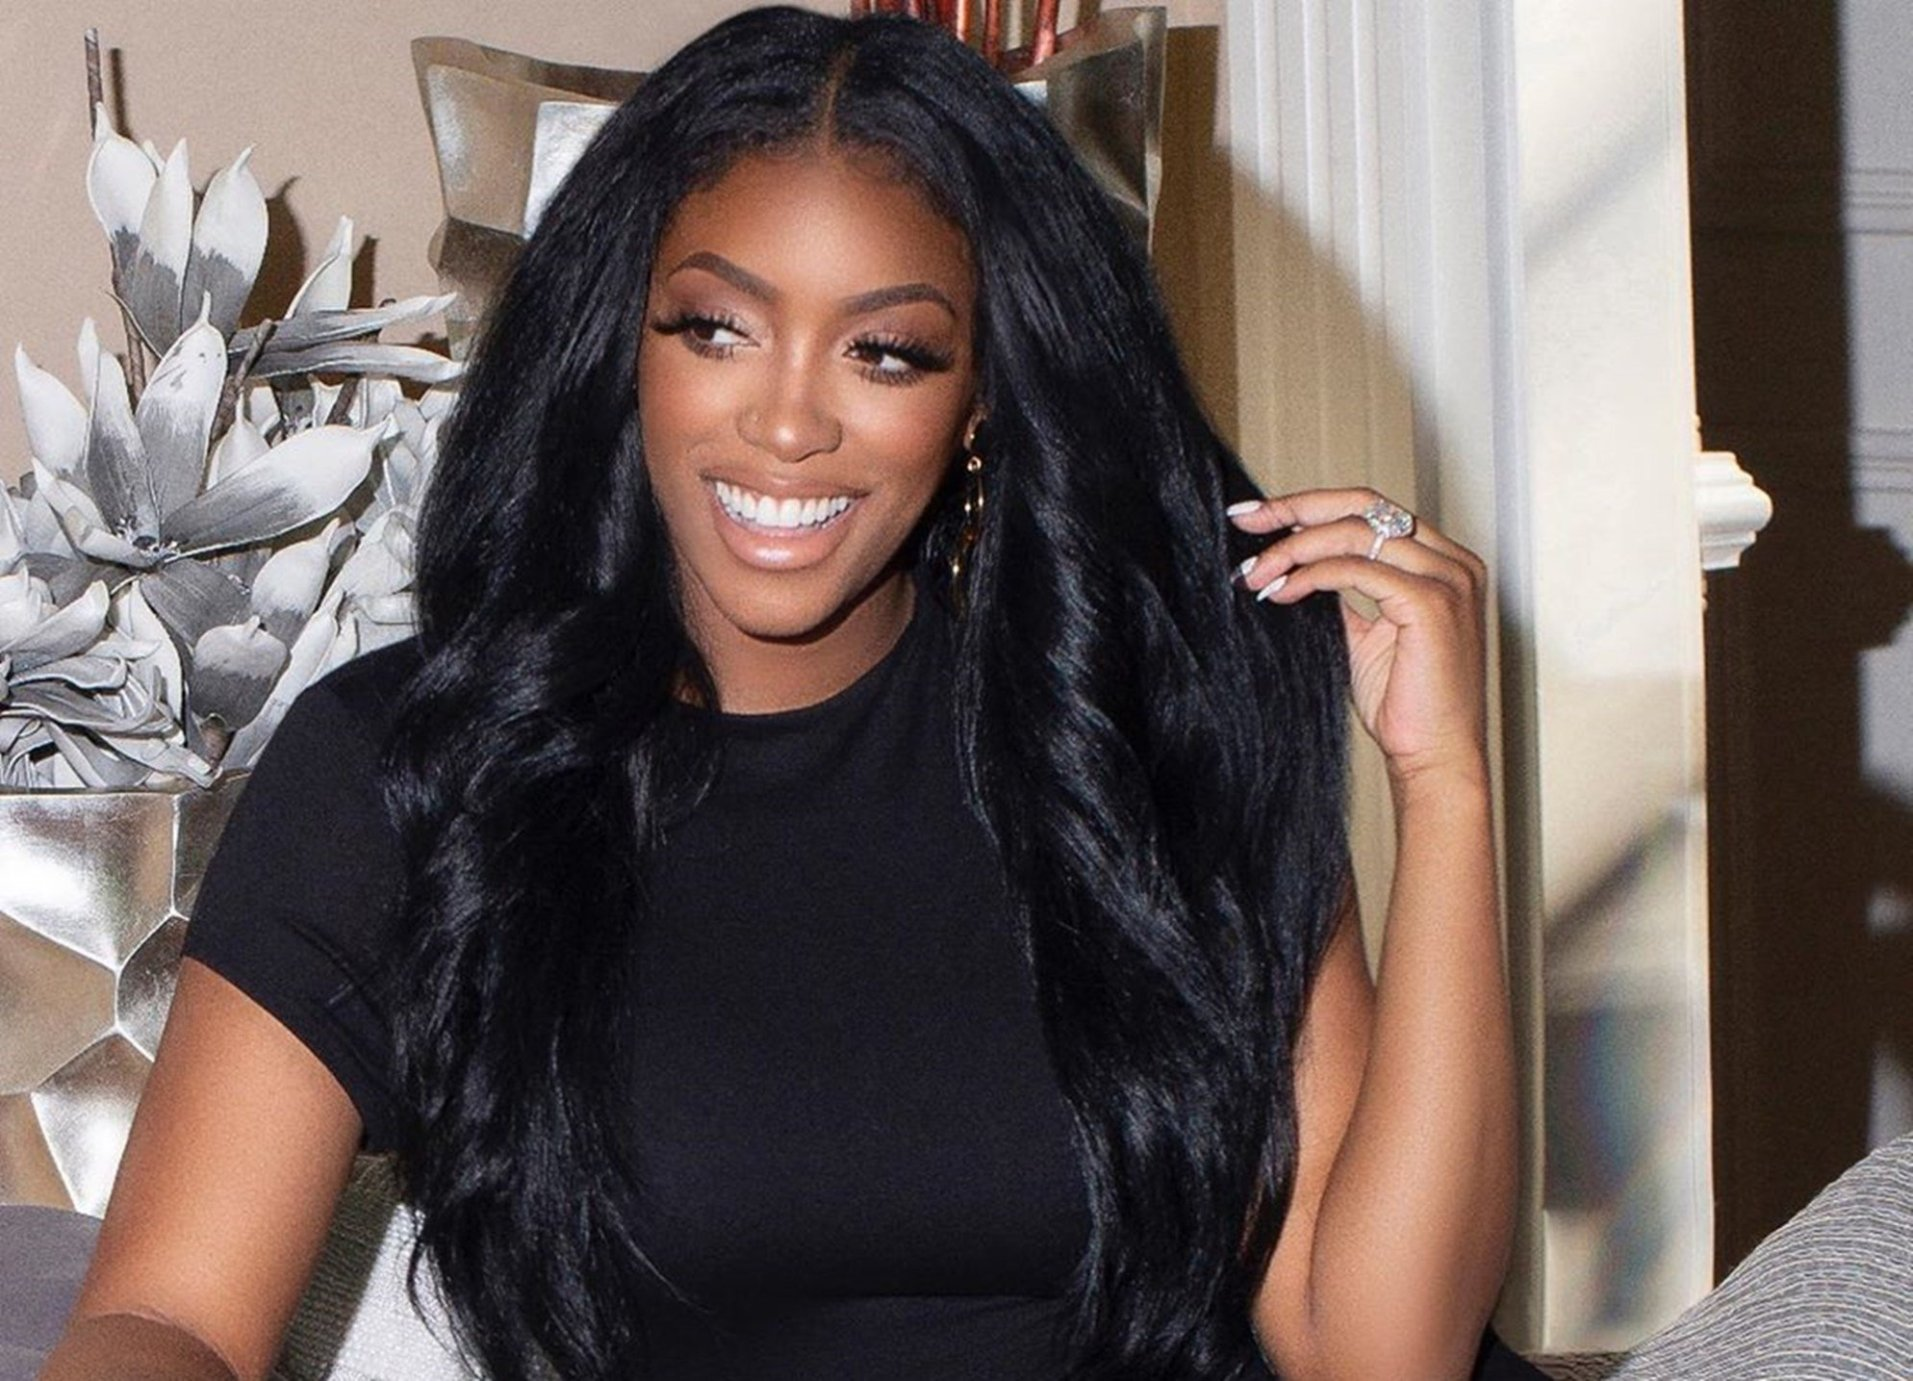 Porsha Williams Is Considering A Makeup Line - Check Out Her Video